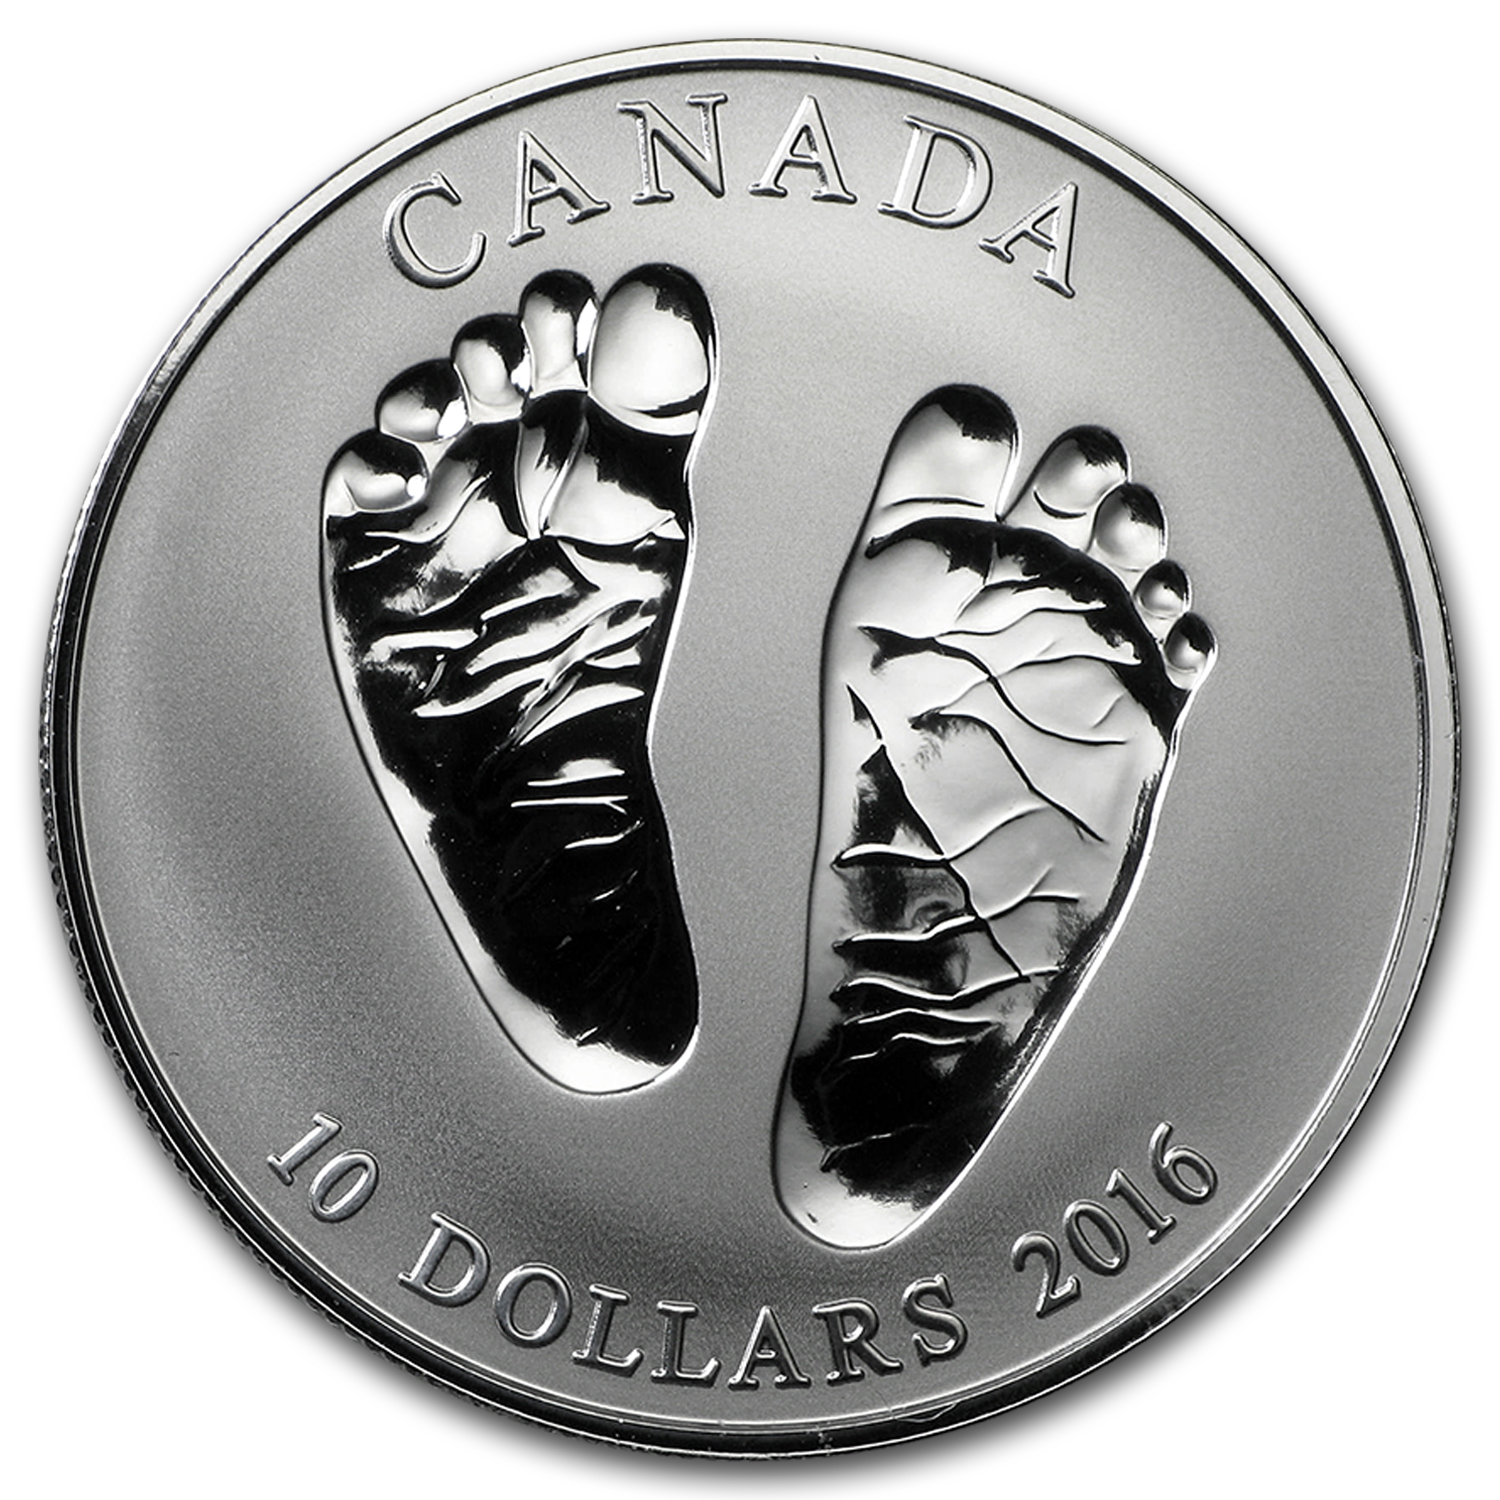 2016 Canada 1/2 oz Silver $10 Welcome Baby Reverse Proof